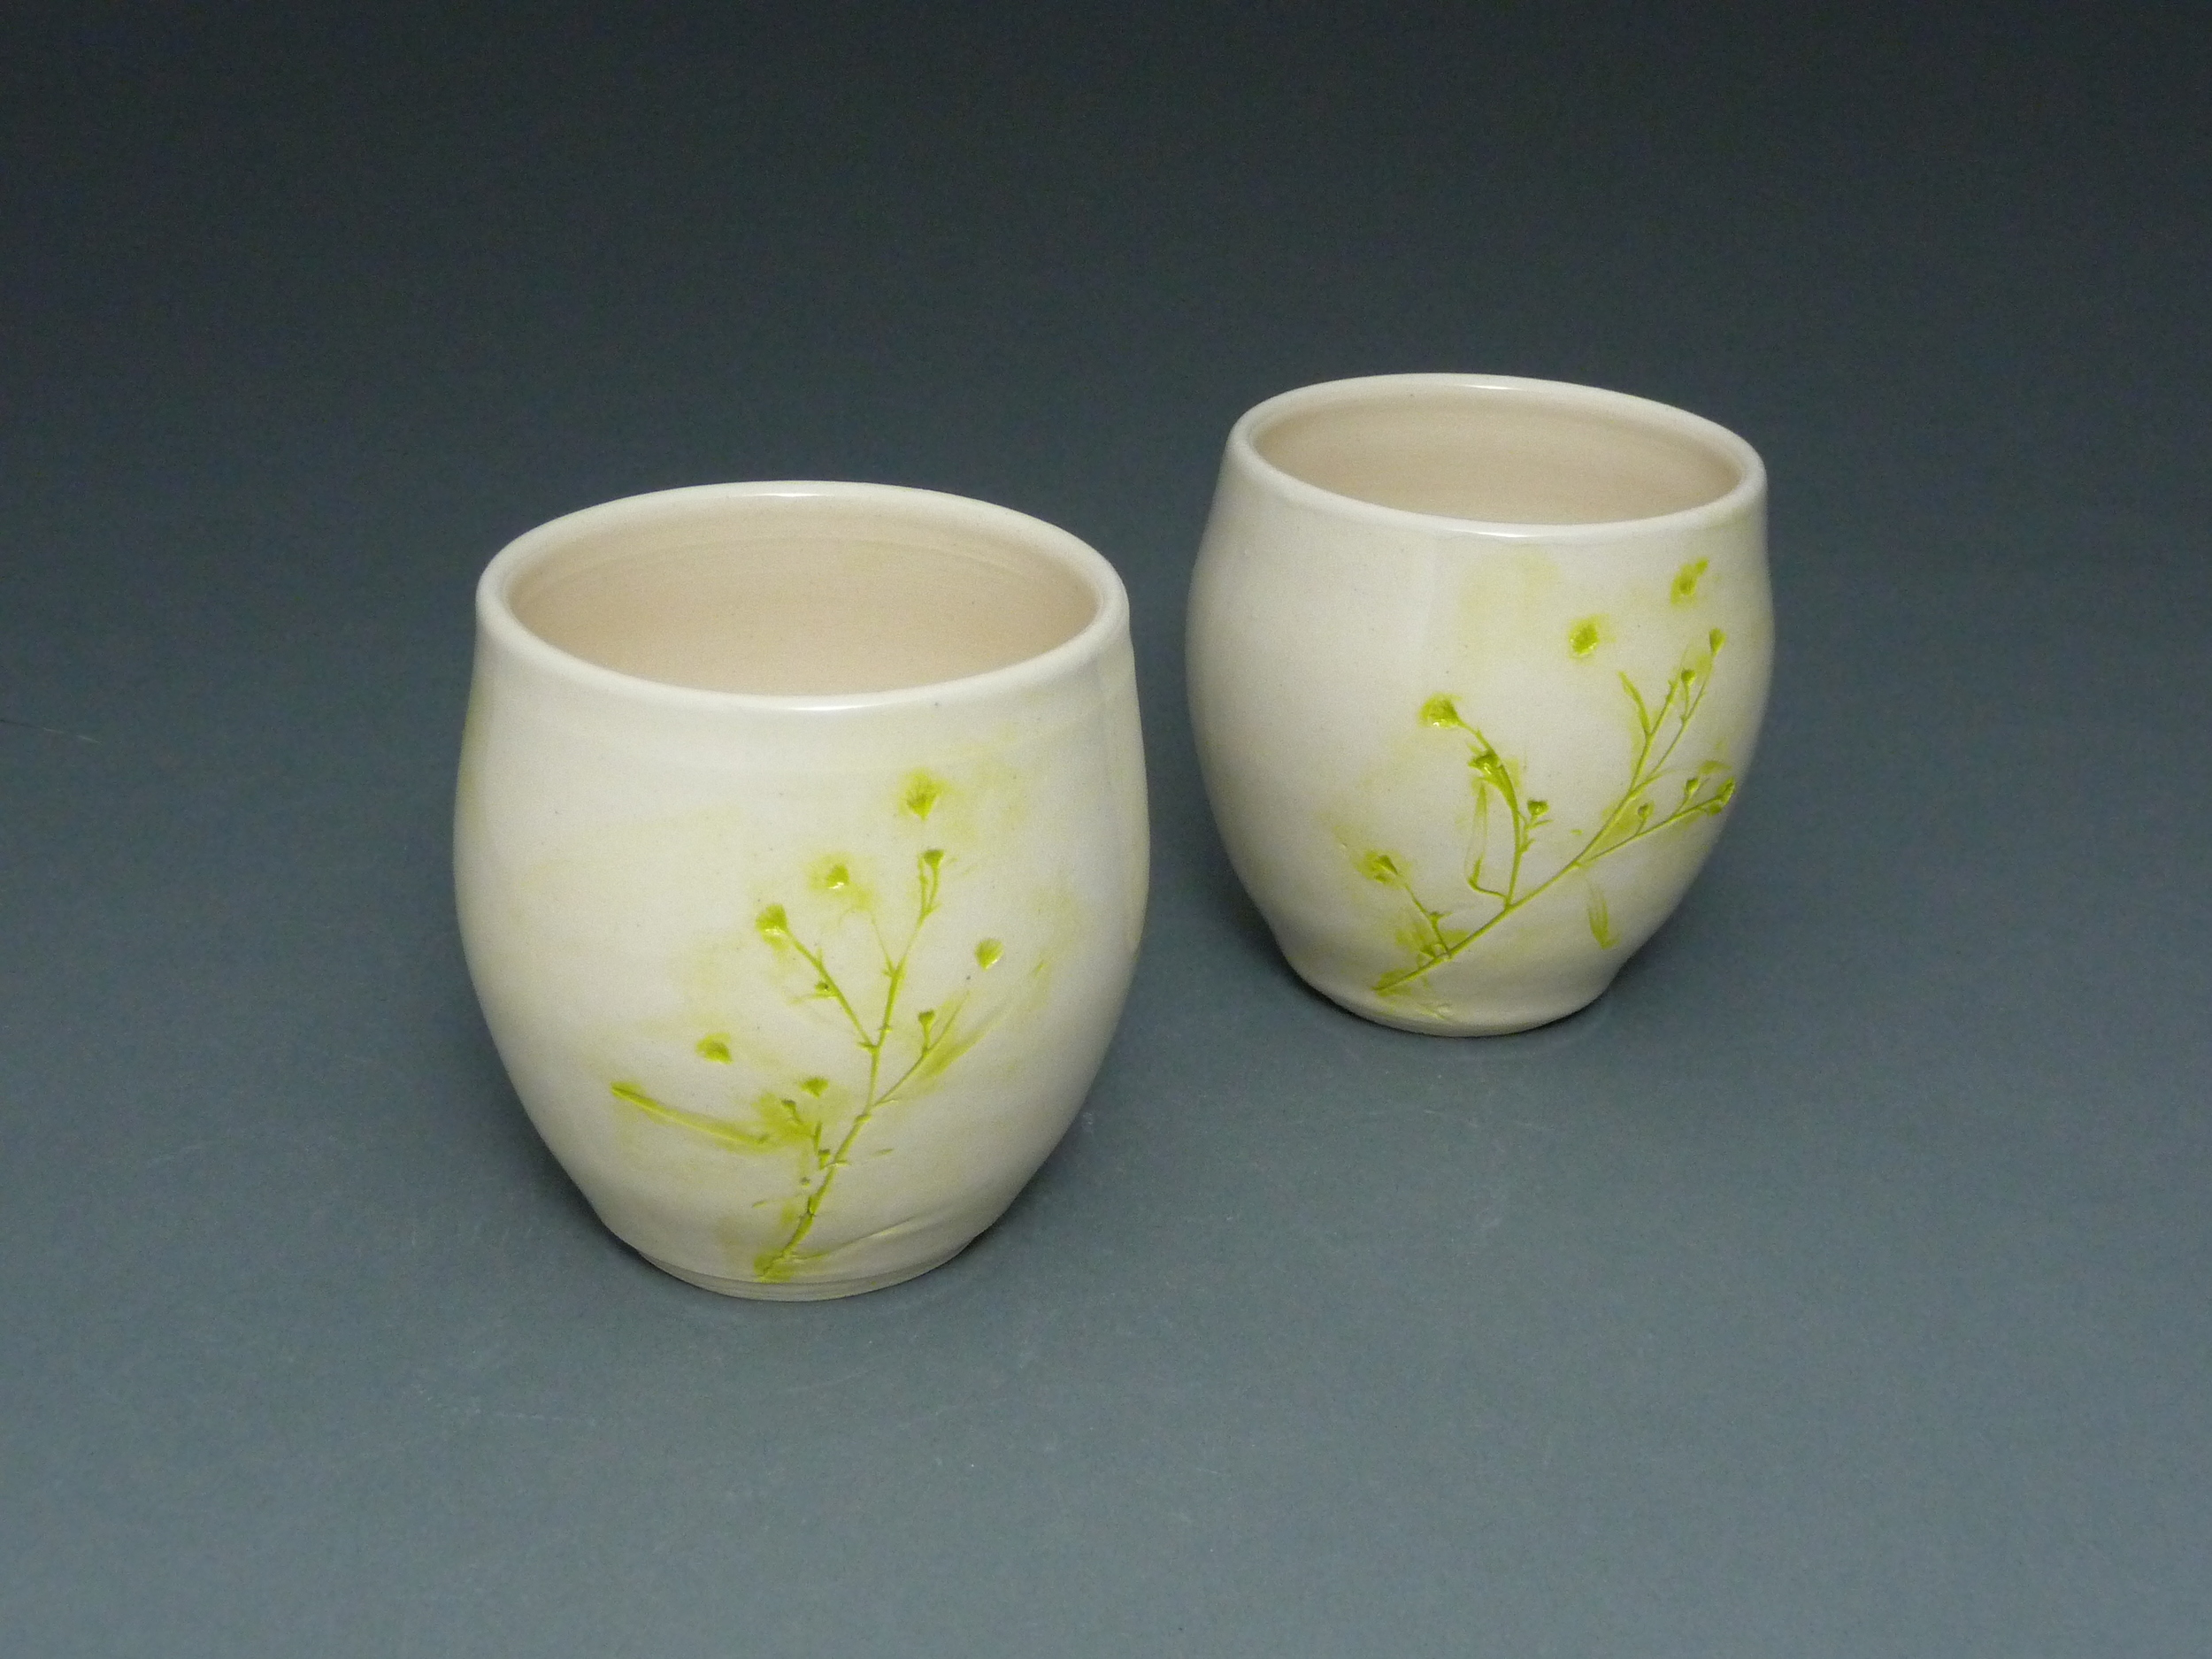 2 Nature Cups $16 each